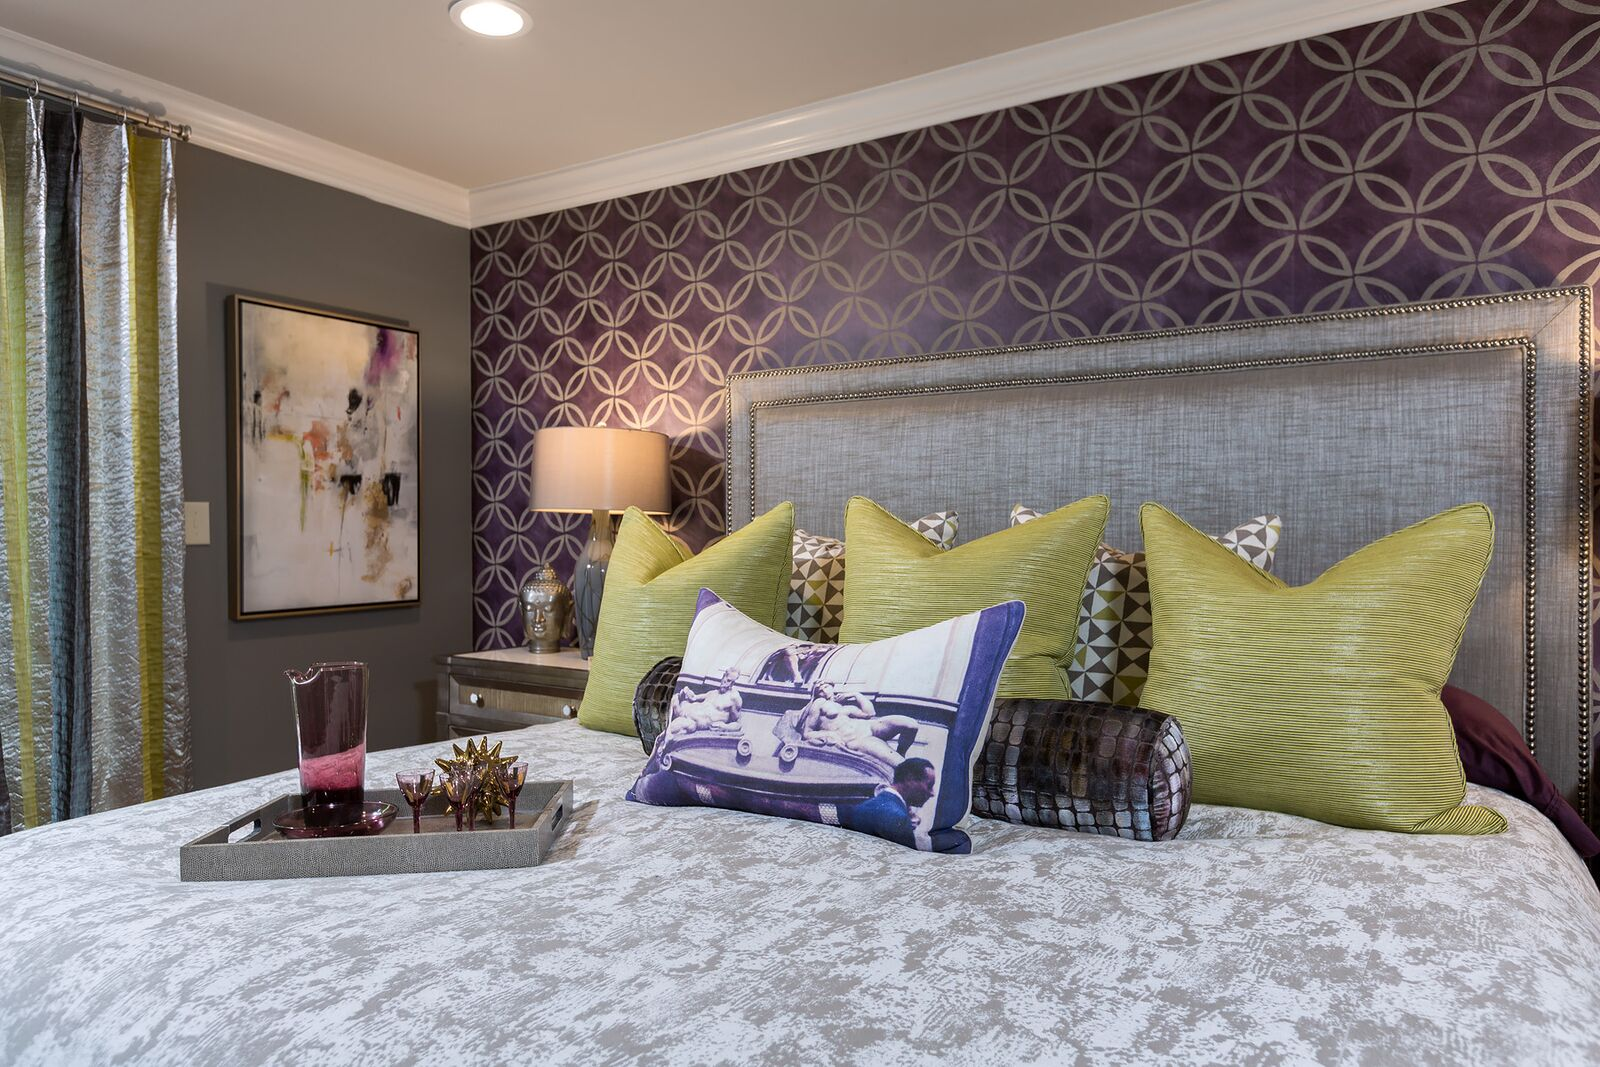 Not a bashful bedroom refresh and renew in detail for Renew home designs reviews